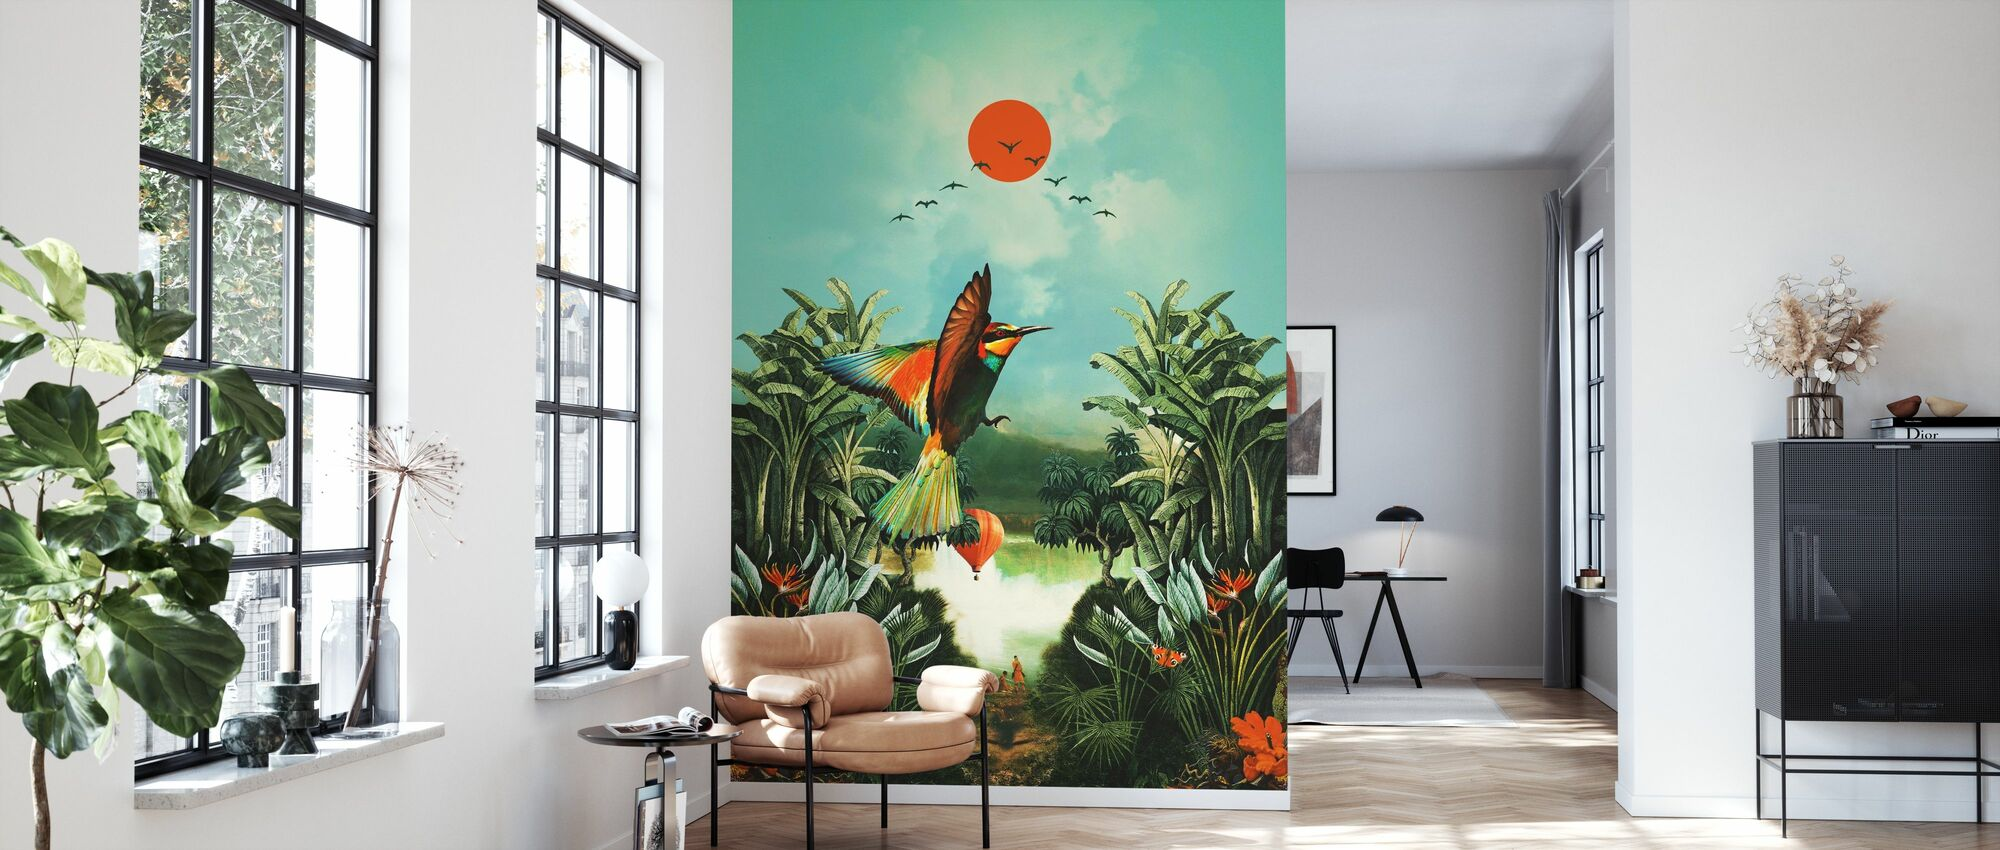 Wonderland - Wallpaper - Living Room